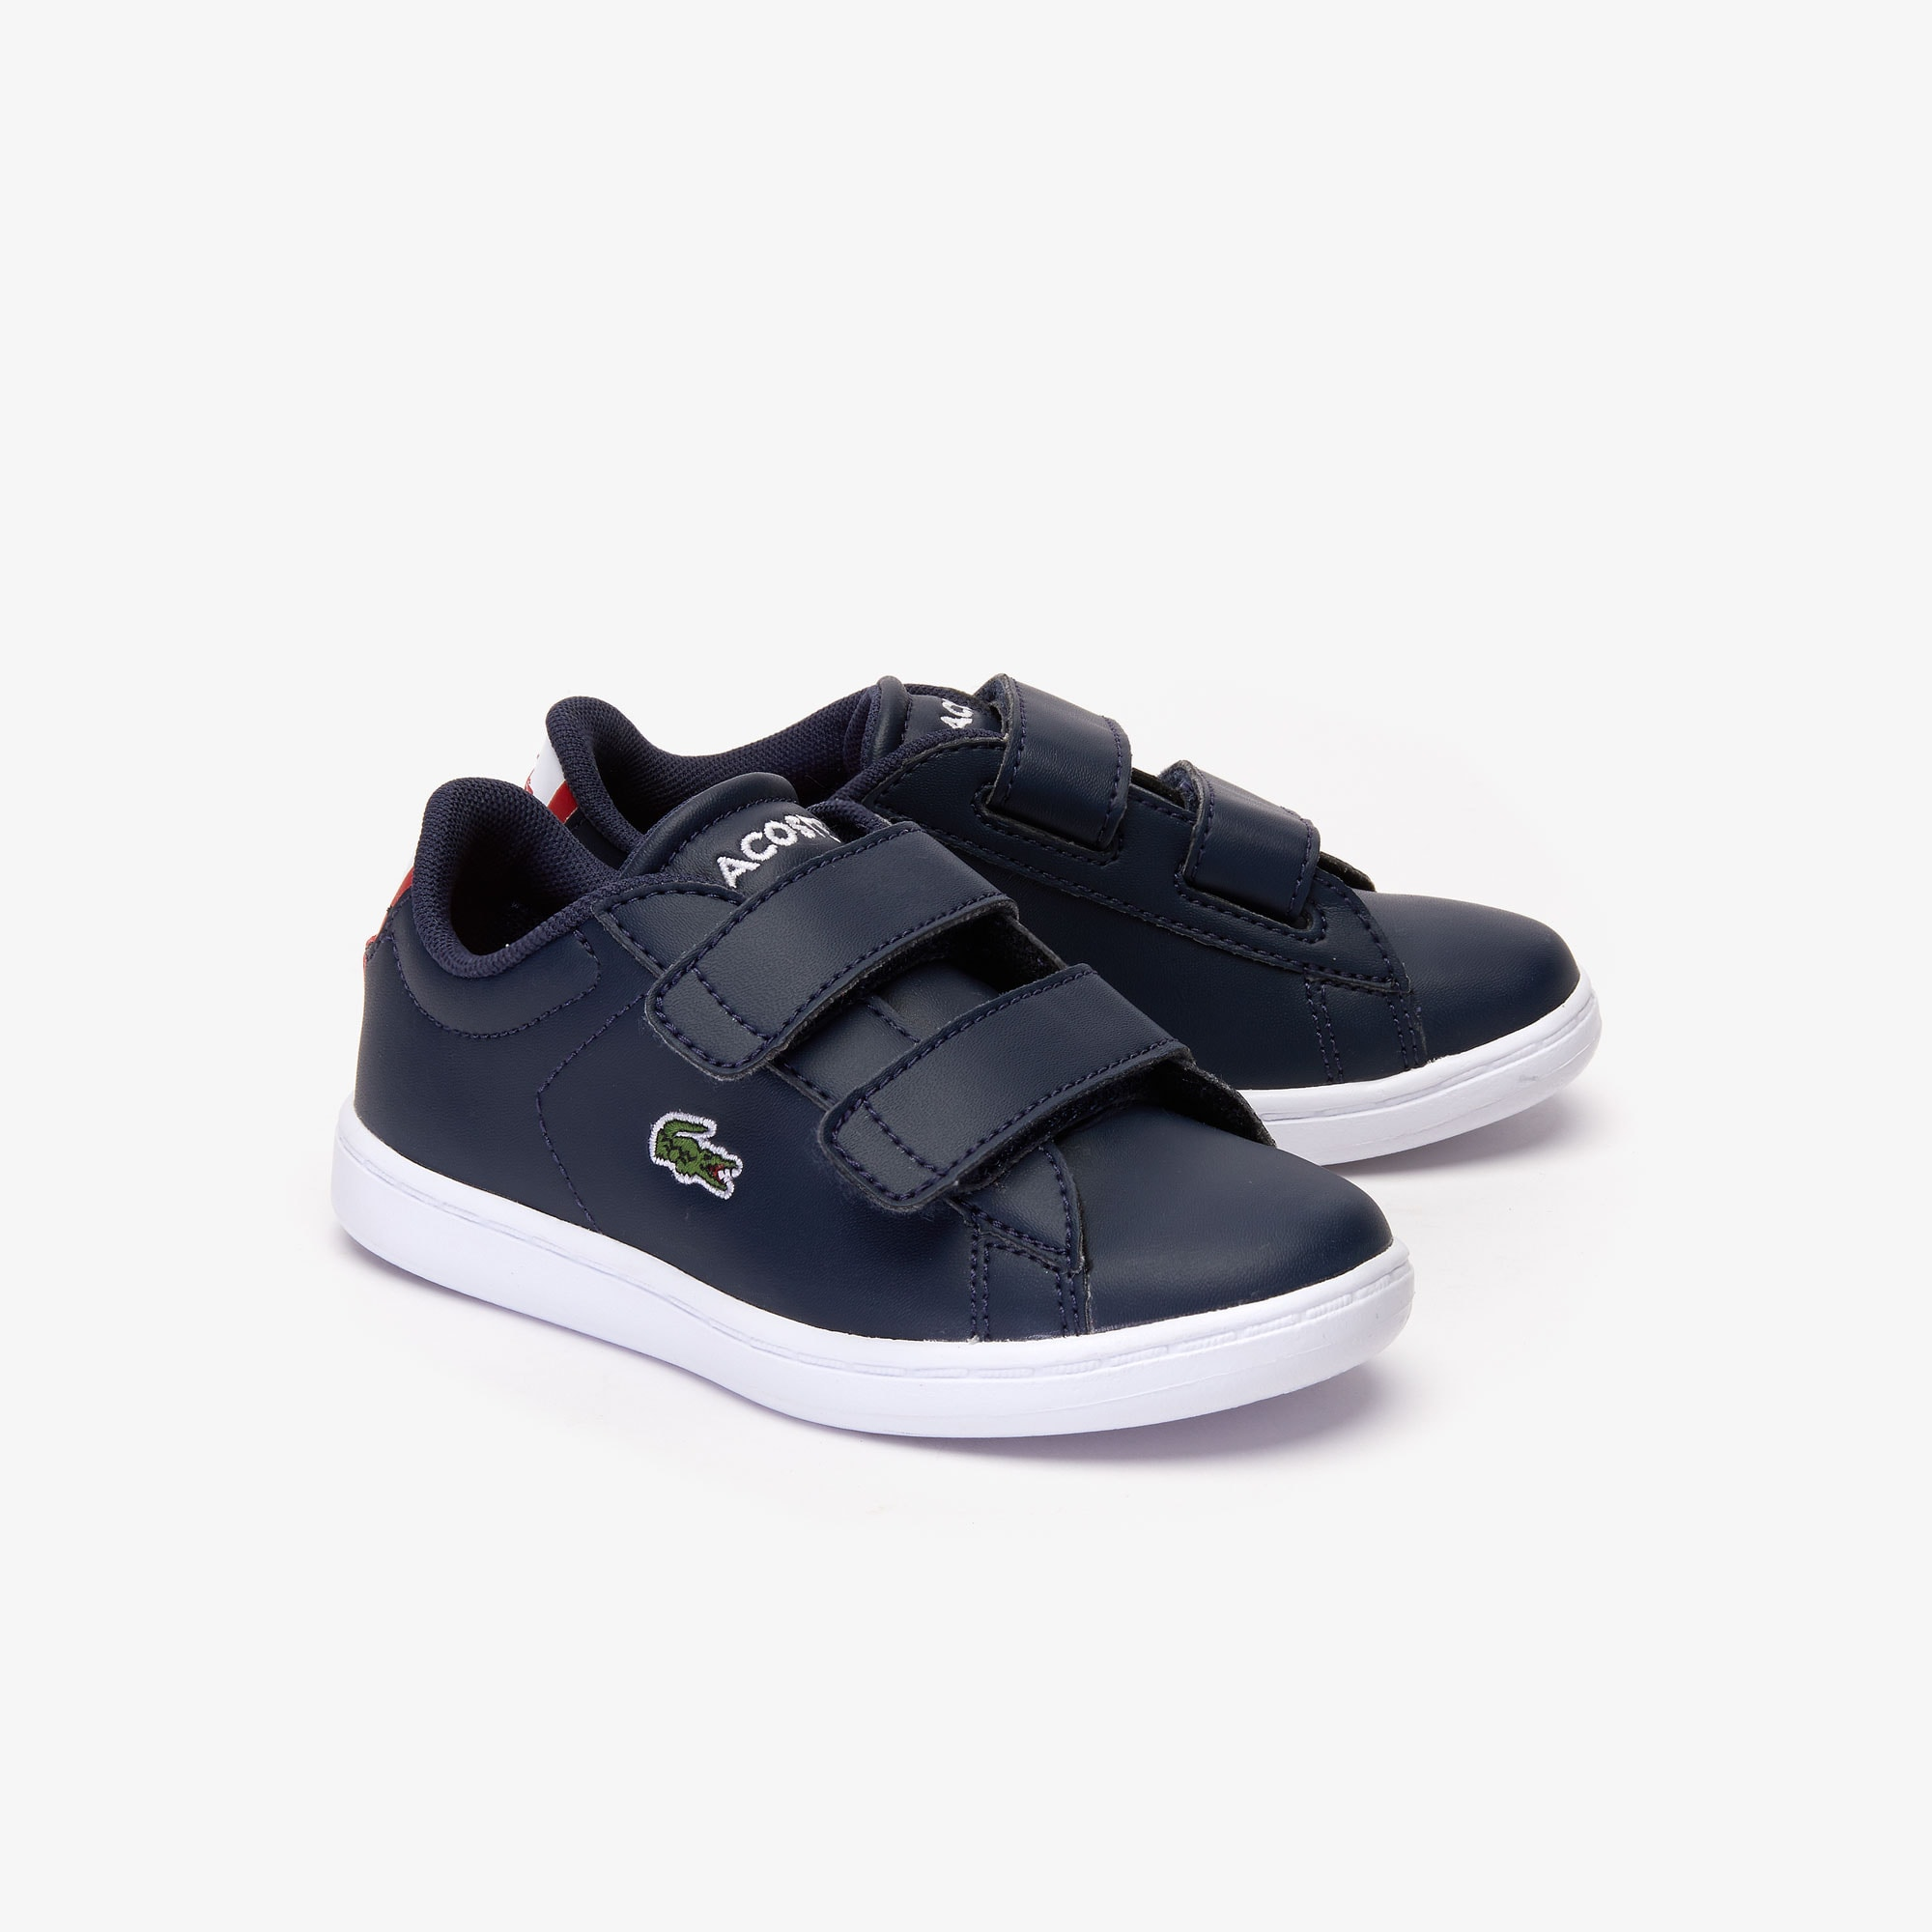 Sneakers da bambino in materiale sintetico Carnaby Evo Easy